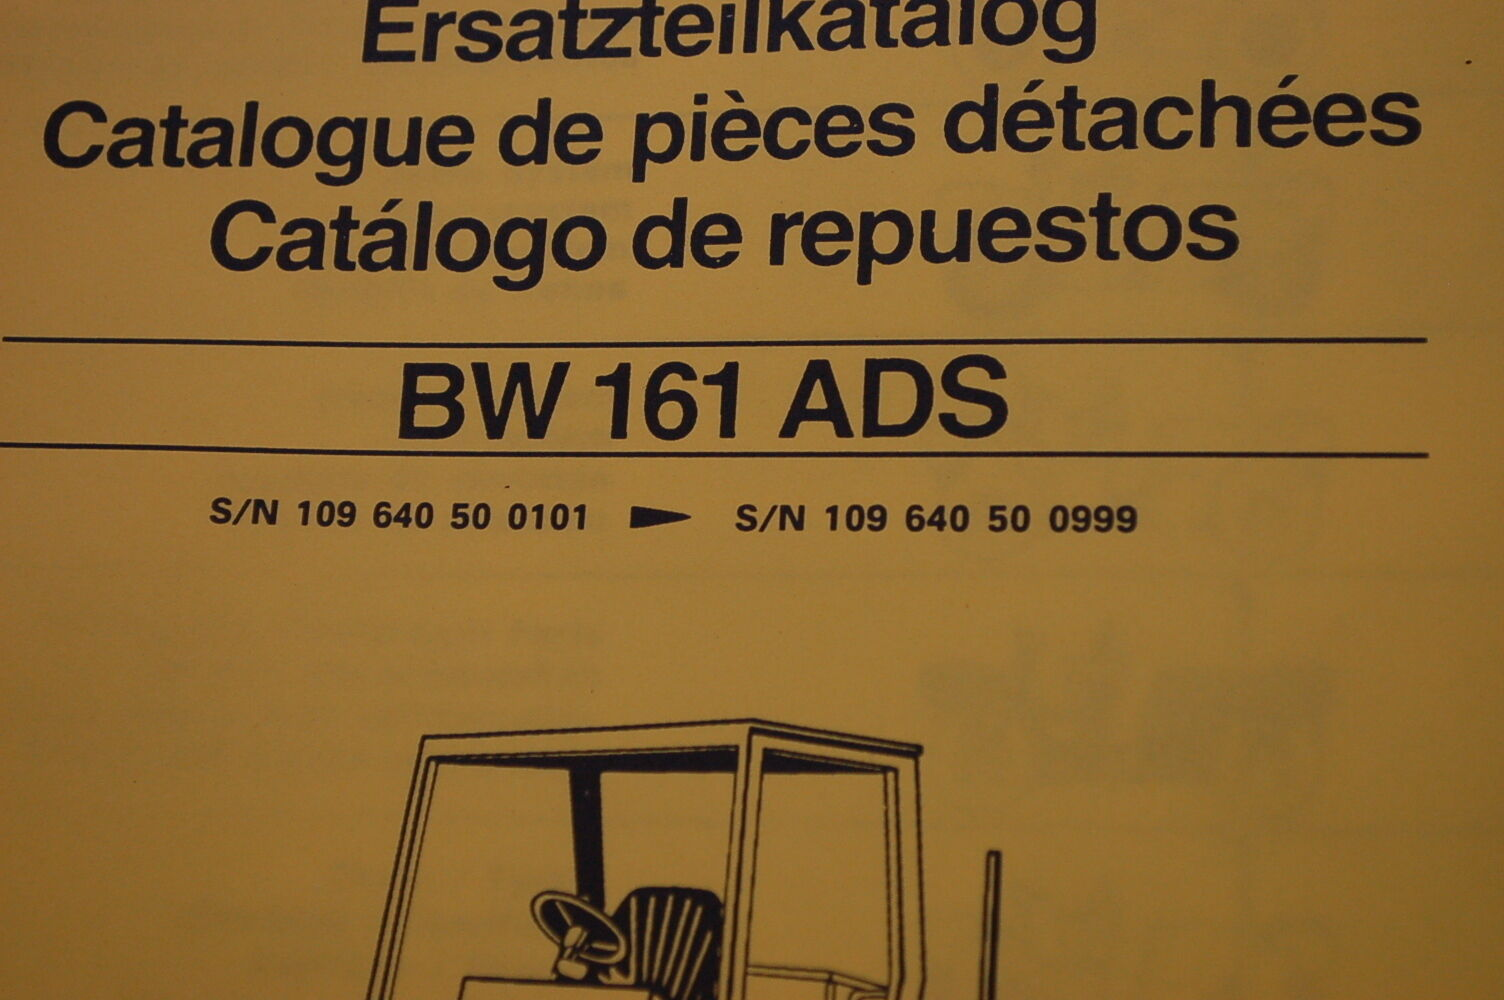 ... BOMAG BW 161 ADS Roller Compactor Parts Manual book catalog spare list  index 2 of 4 BOMAG BW 161 ...